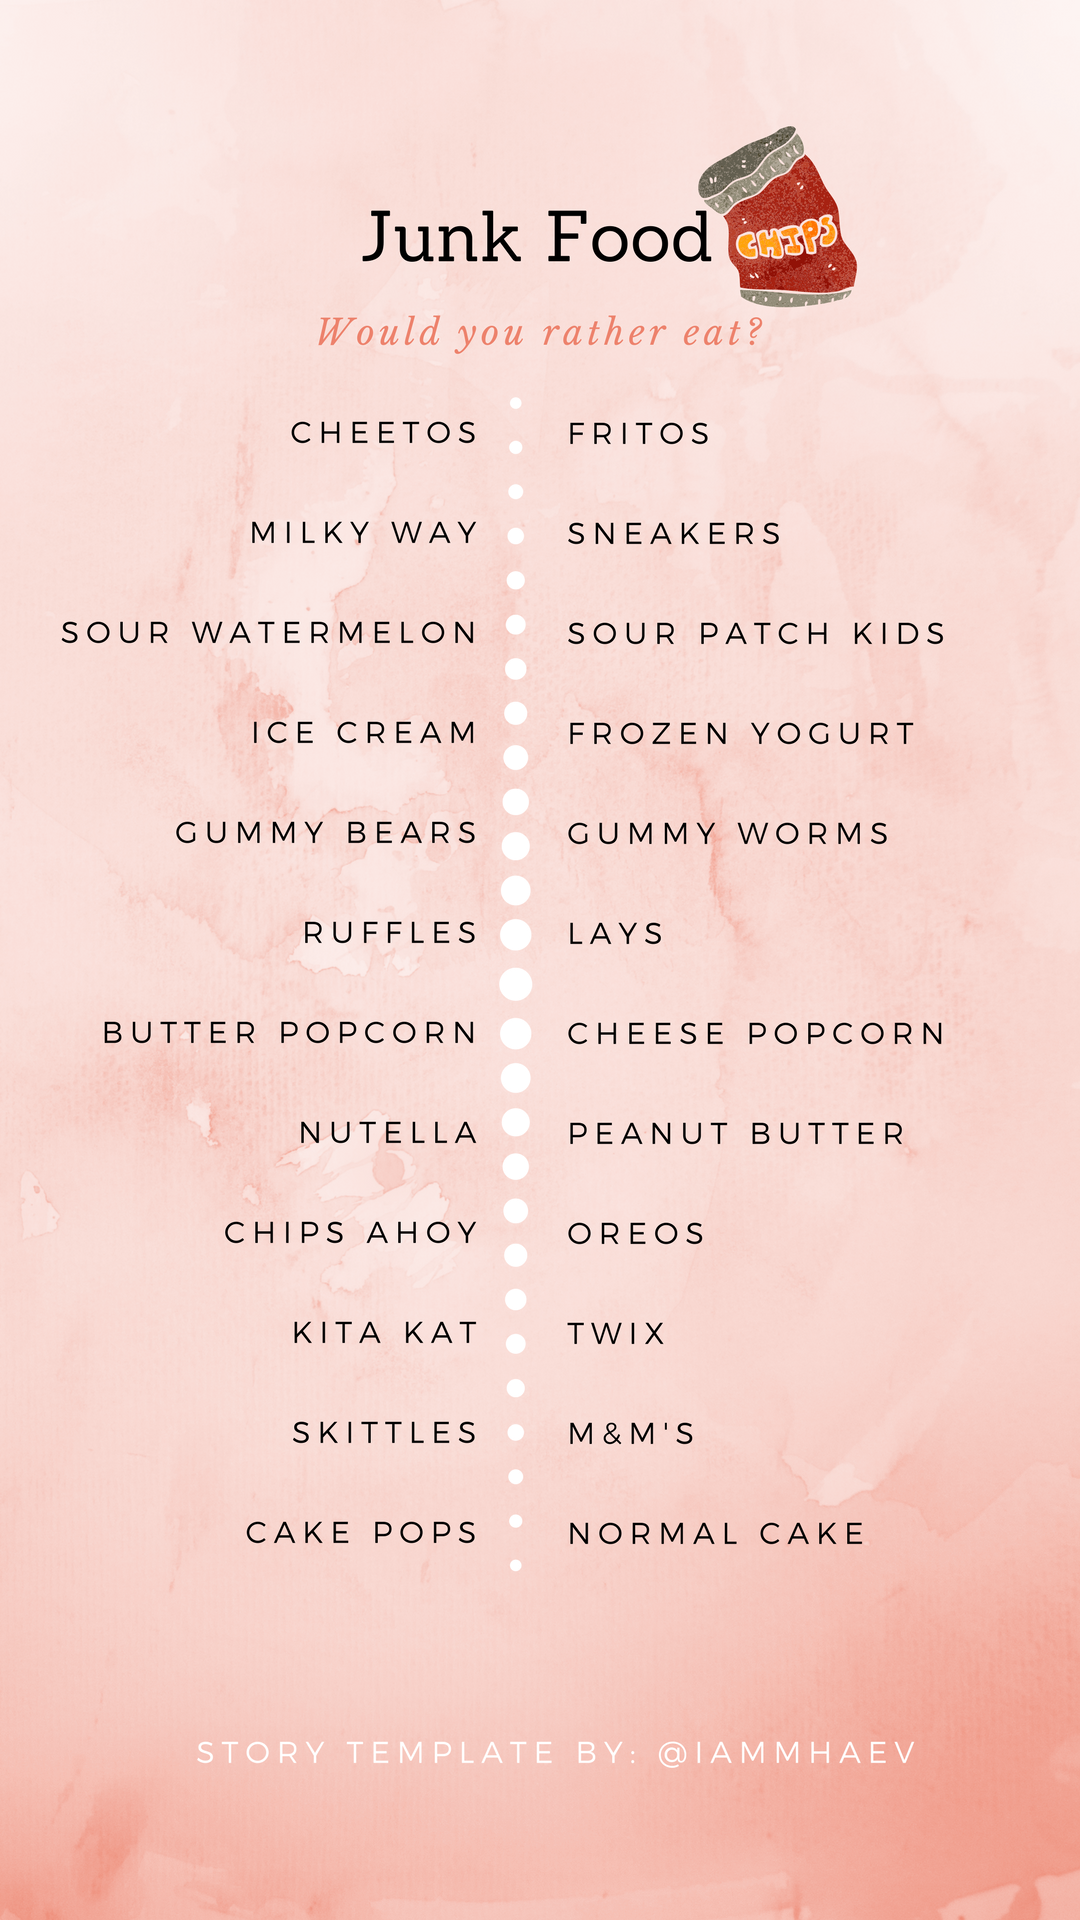 Junk Food (would you rather eat?) Instagram Story Template